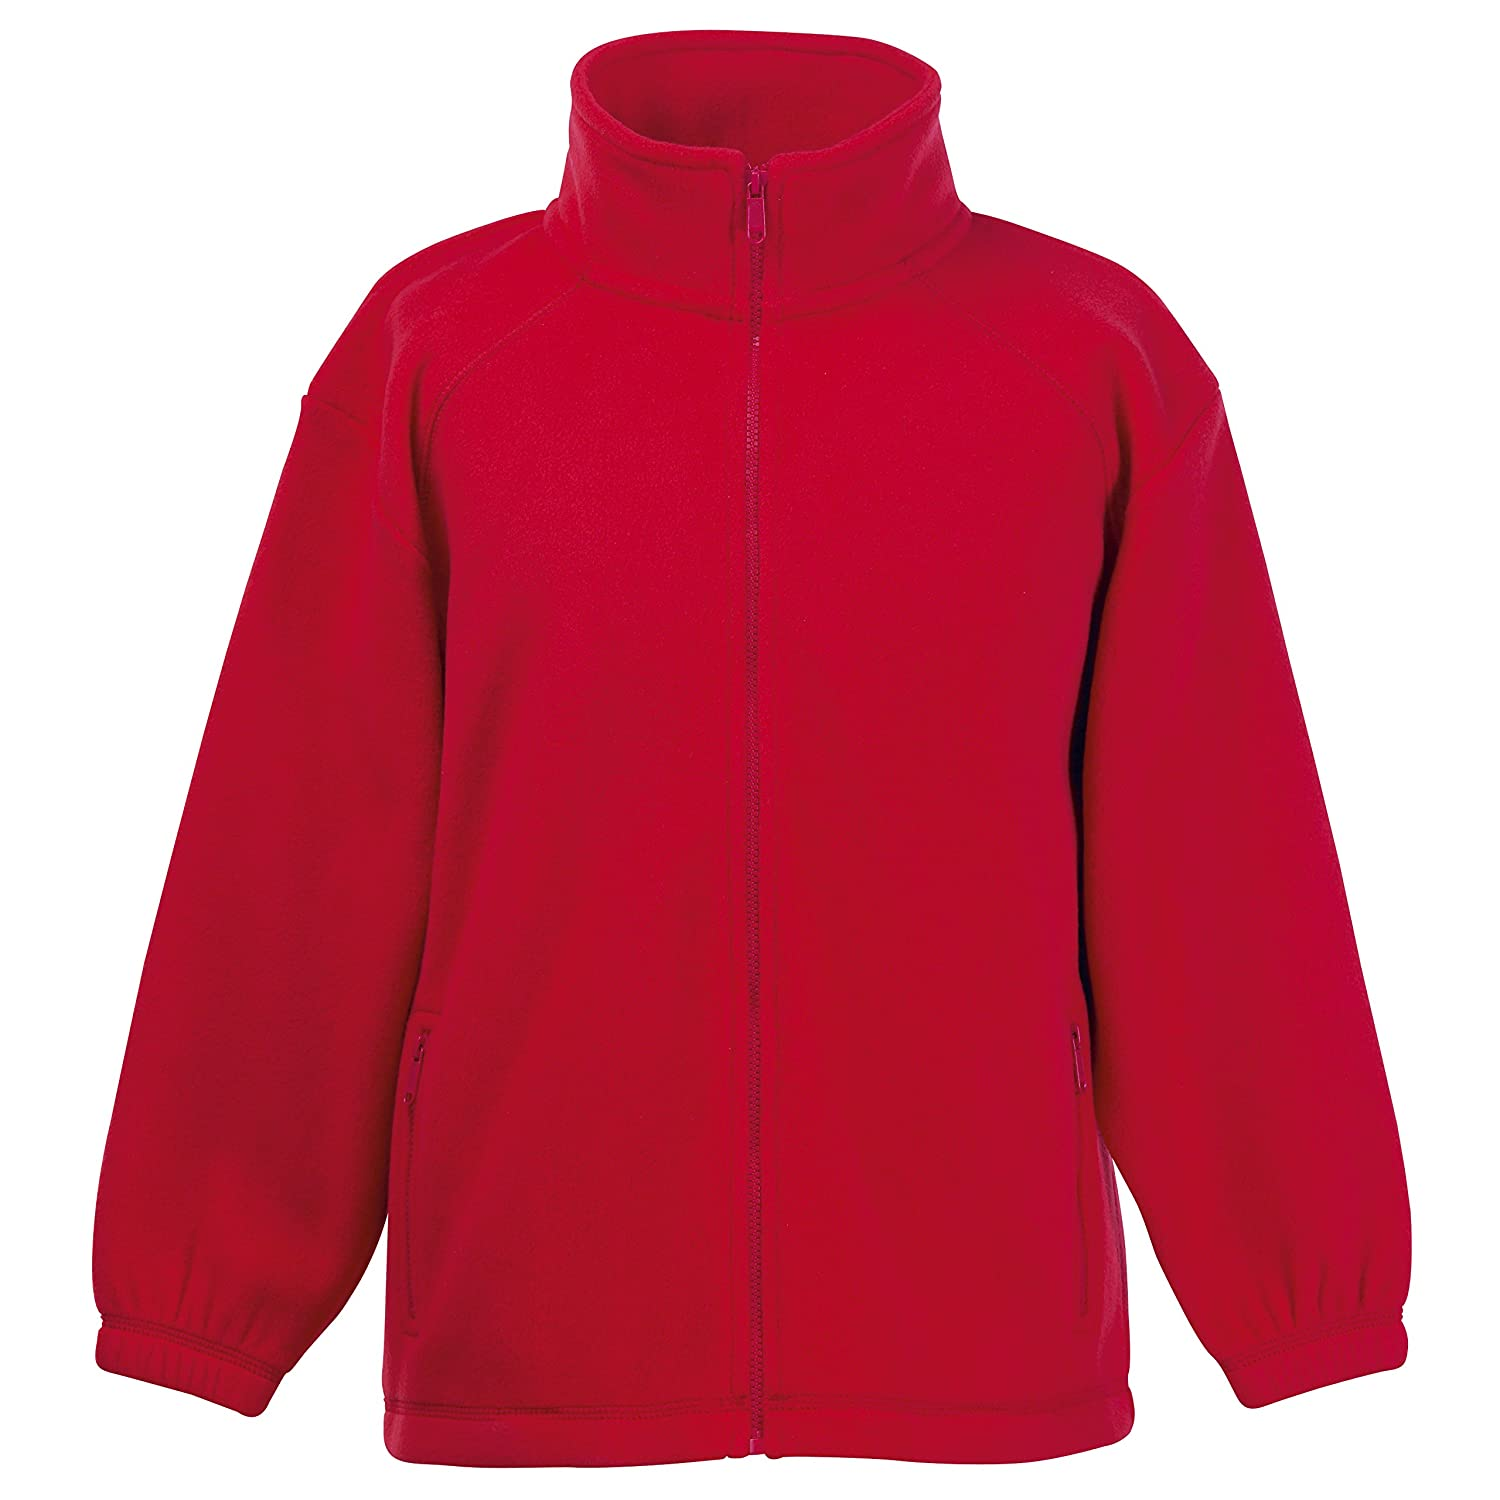 Fruit of the Loom Kids' Outdoor Fleece Jacket